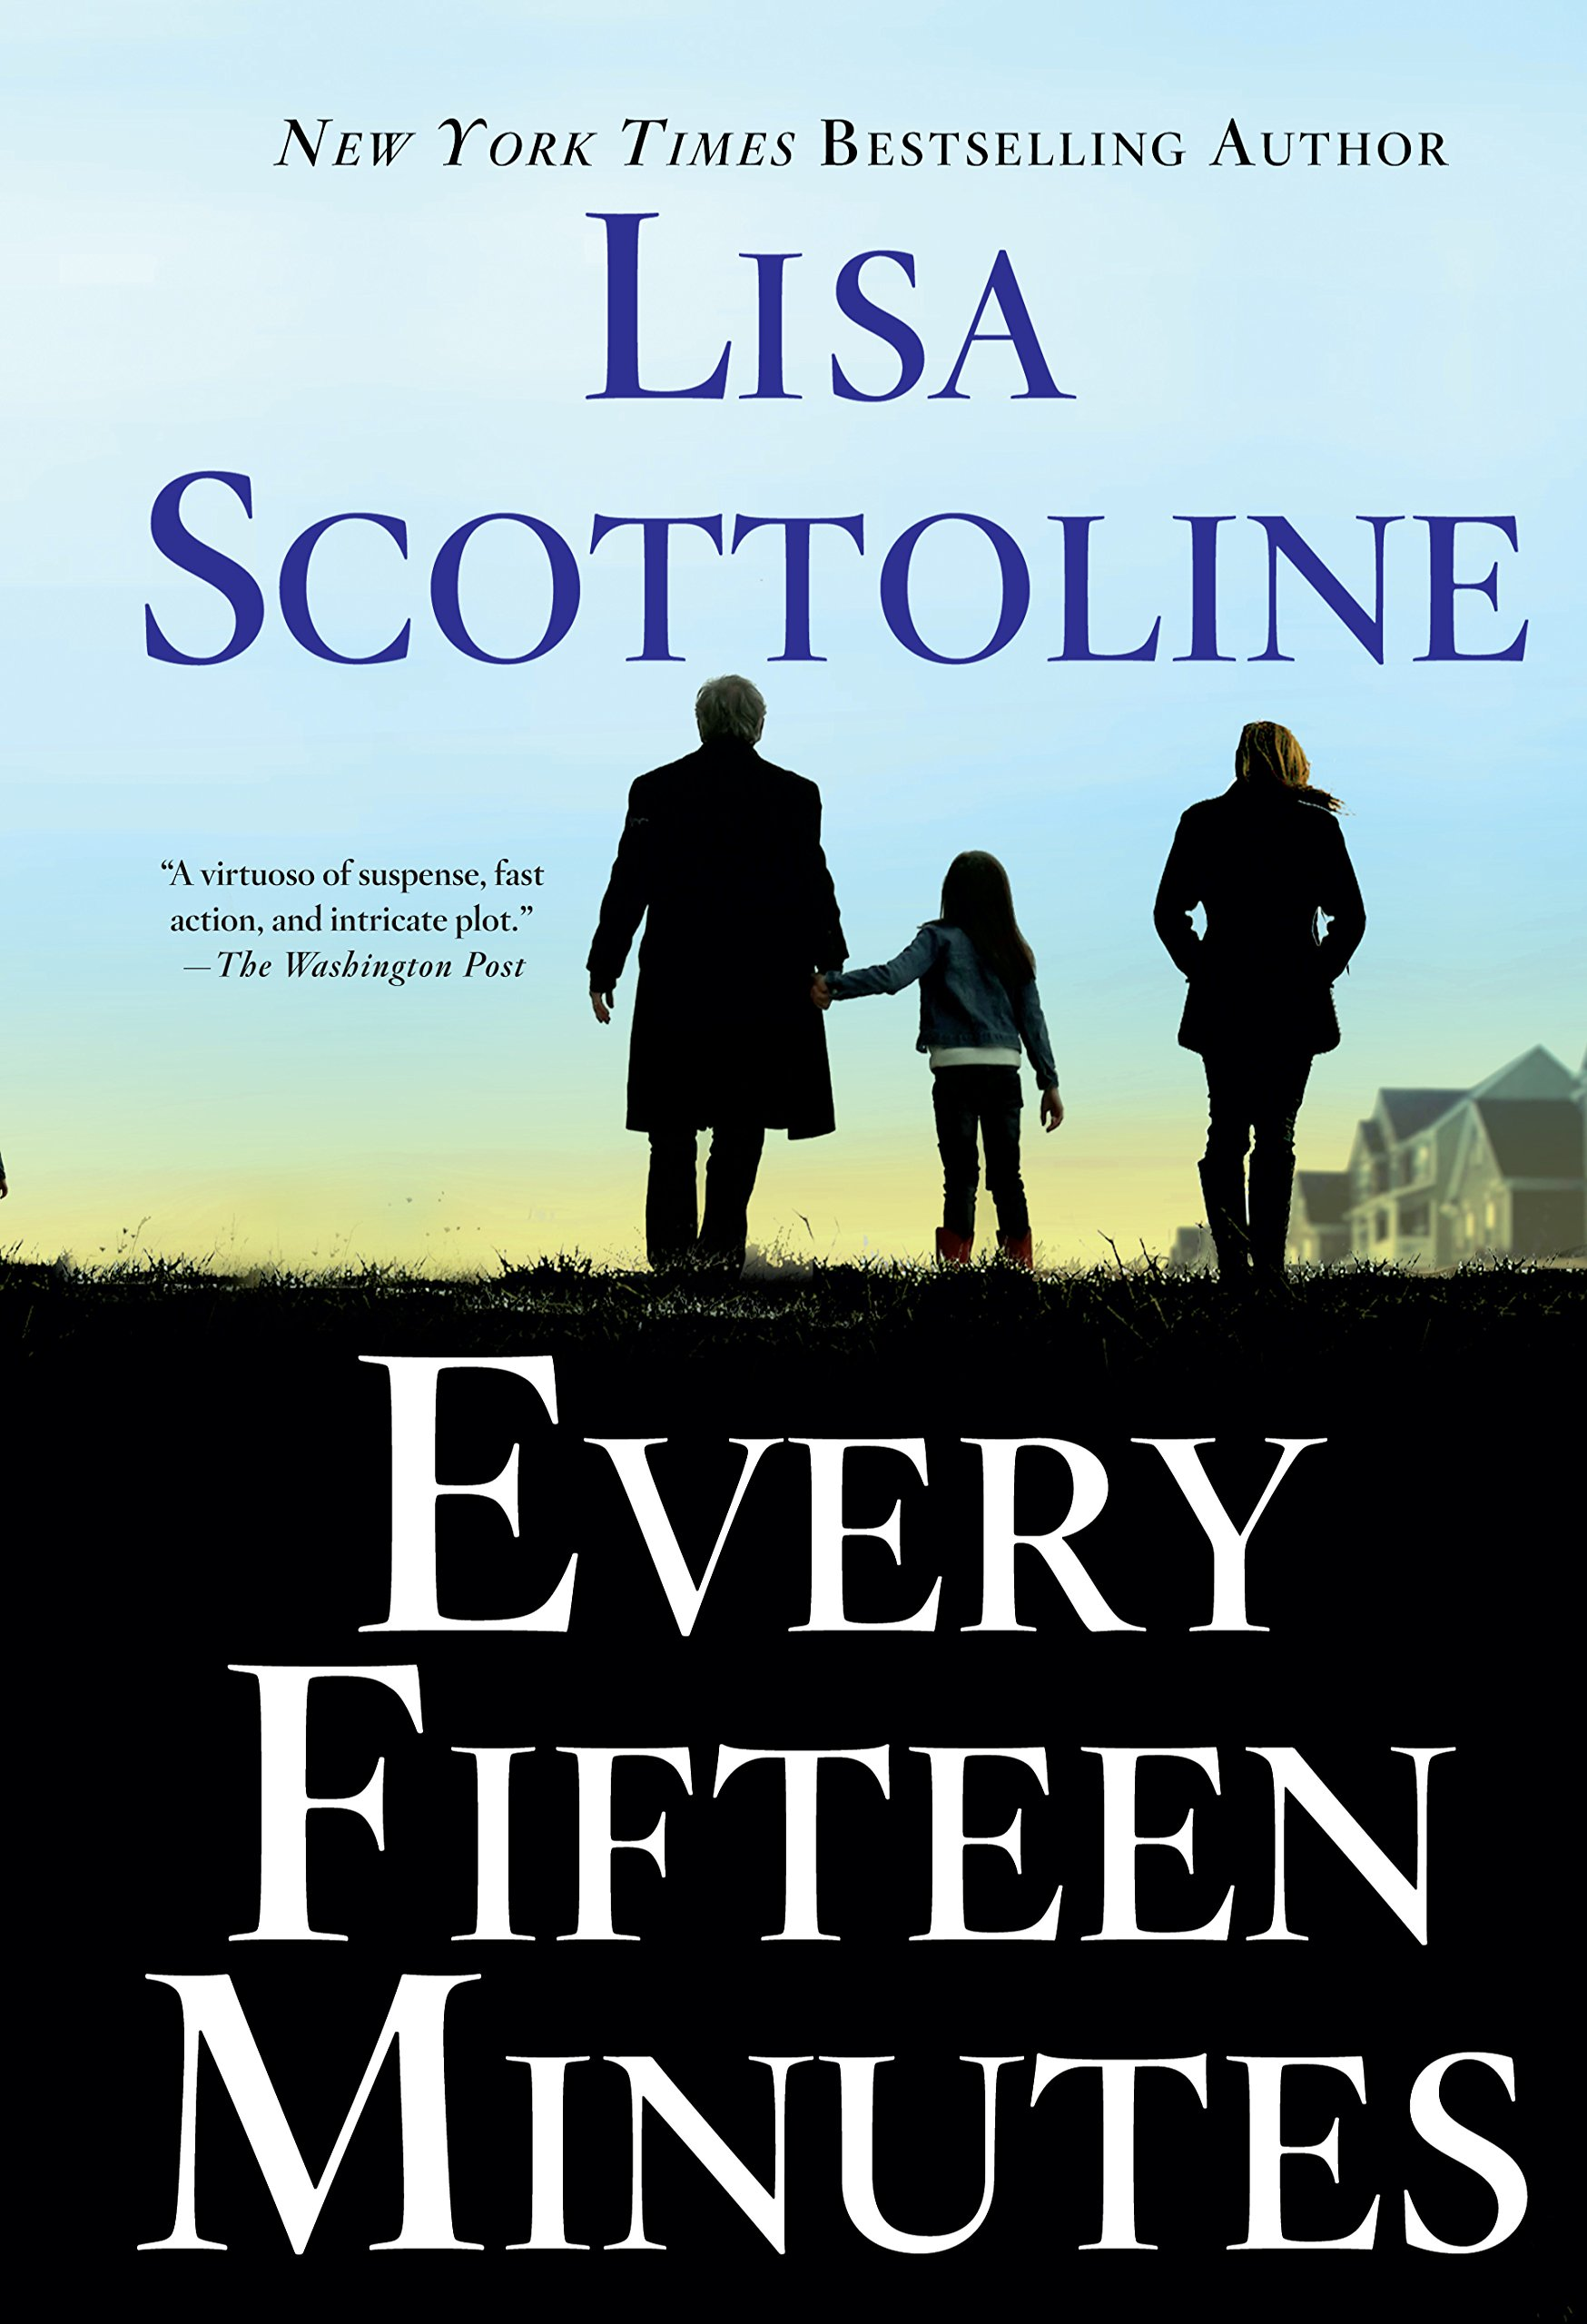 Read Online Every Fifteen Minutes (Thorndike Press large print basic) pdf